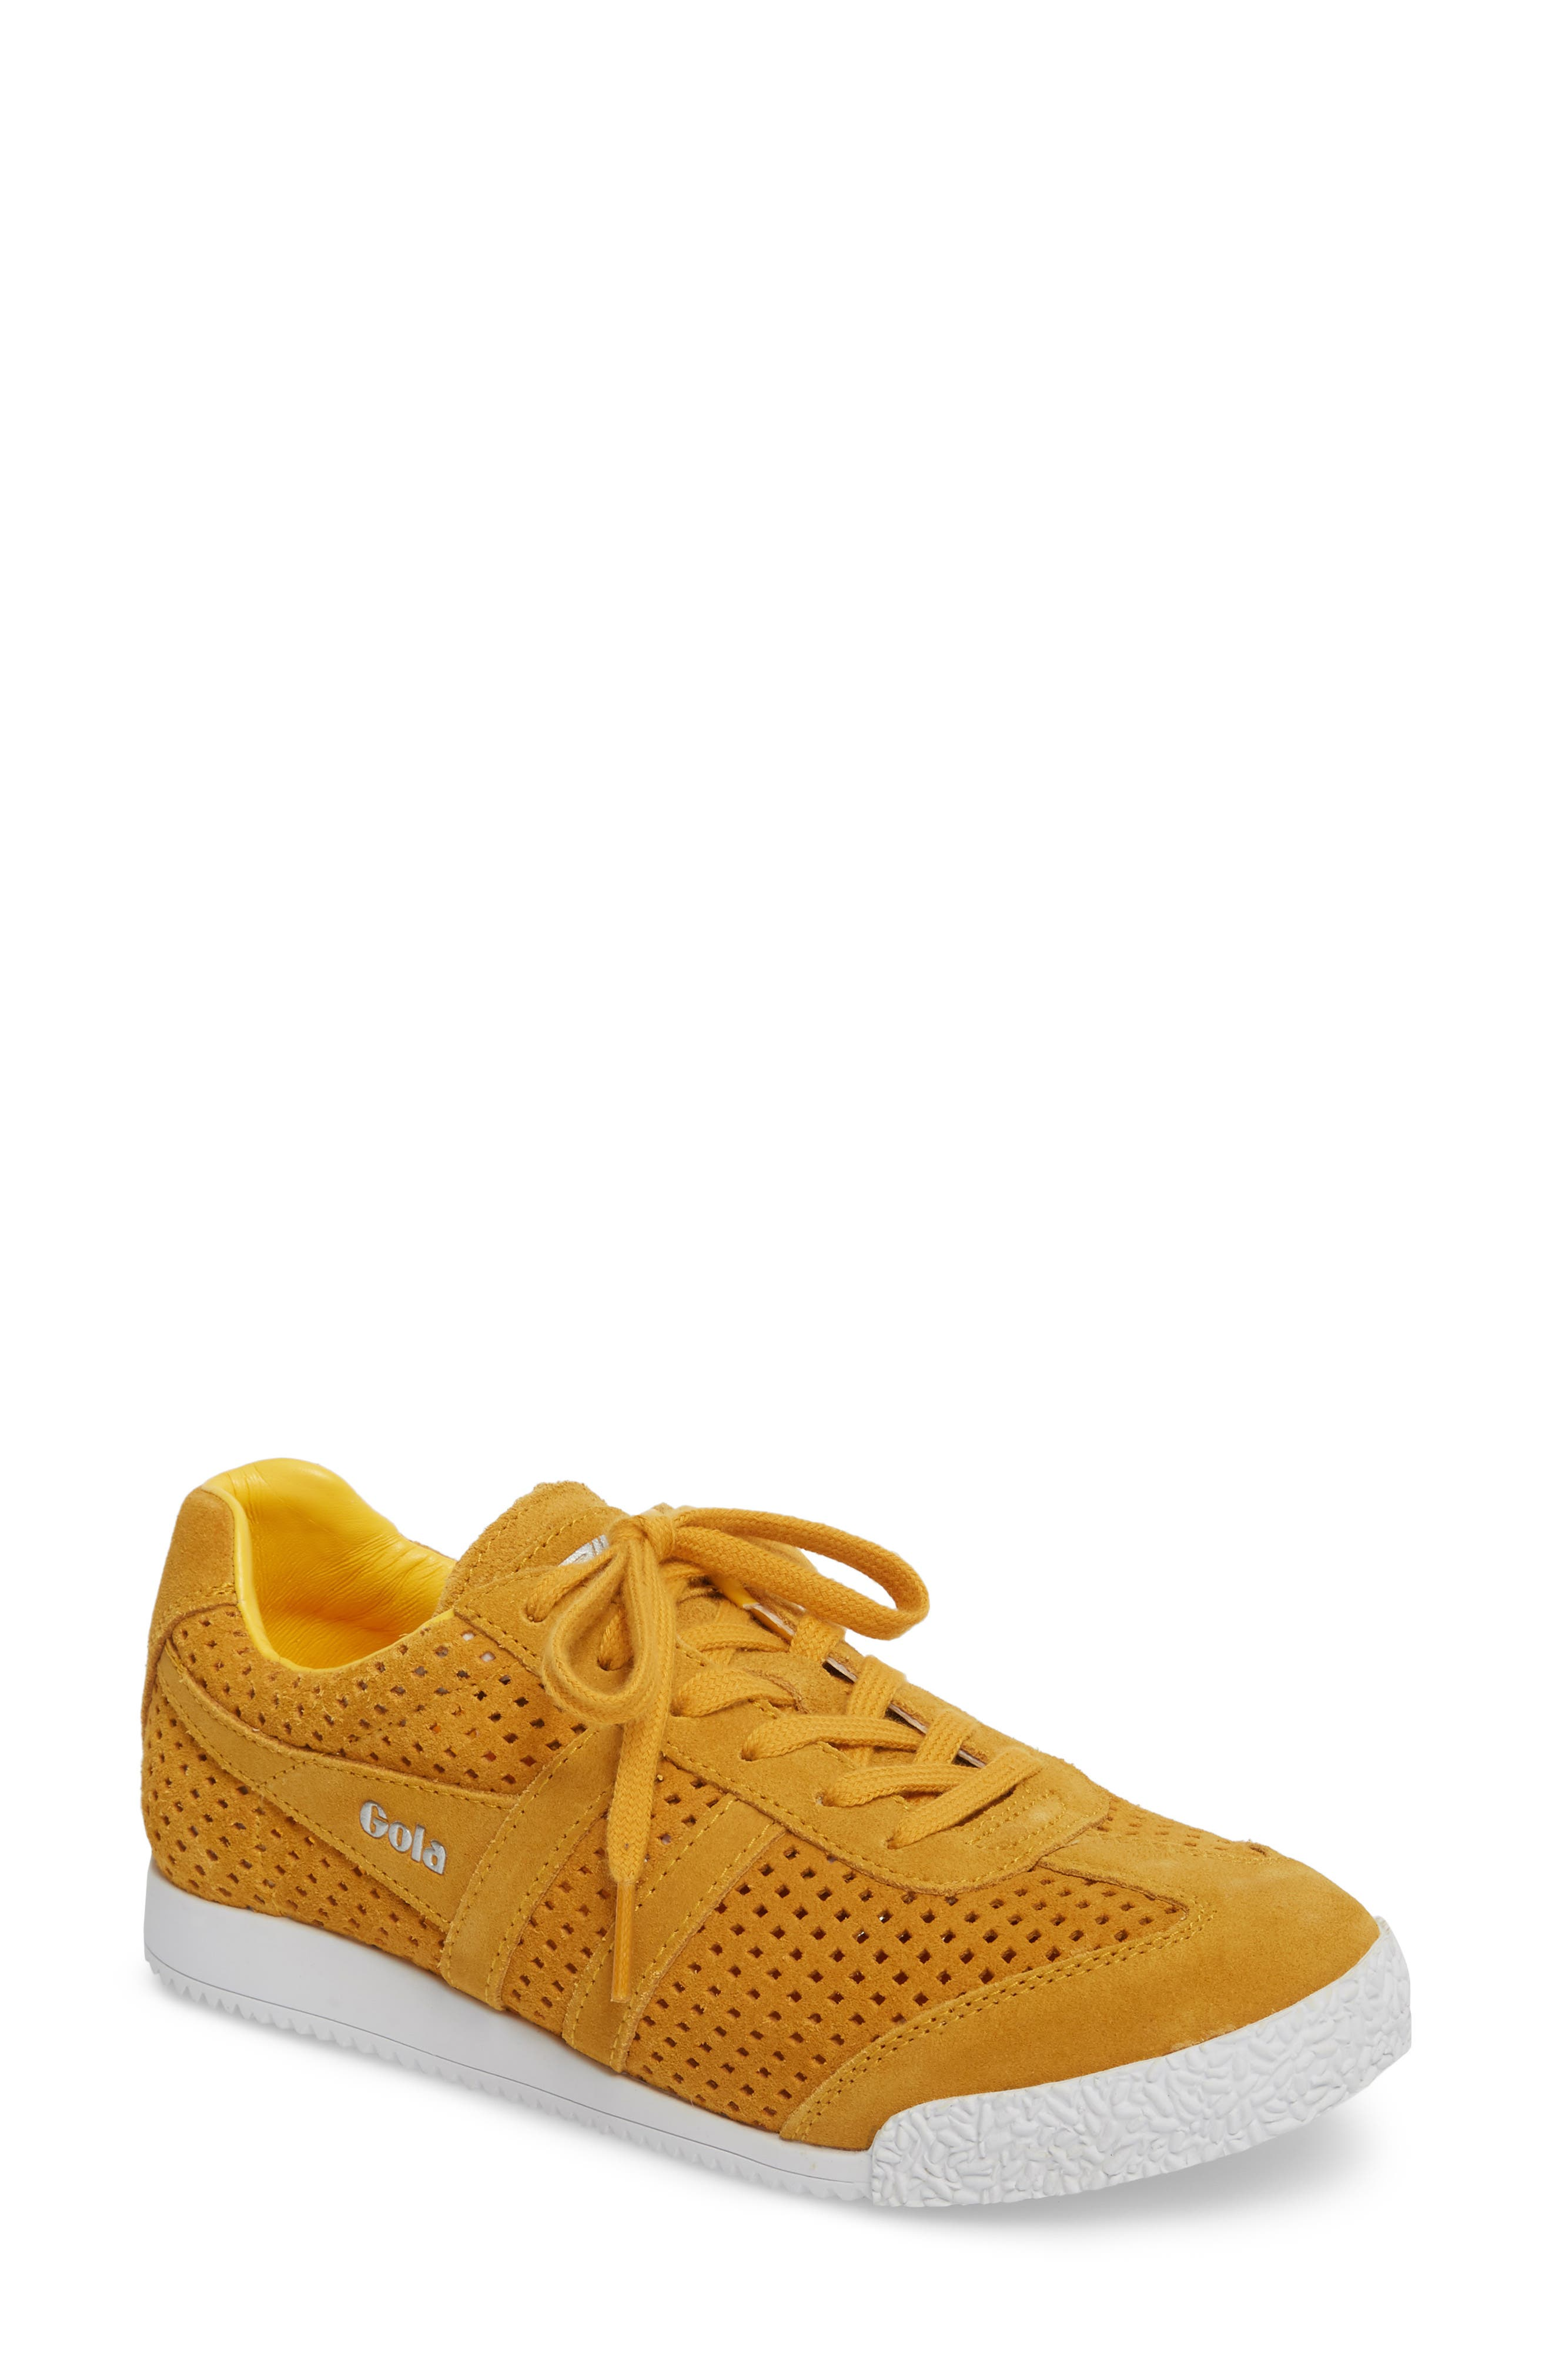 Harrier Squared Low Top Sneaker,                         Main,                         color, 700